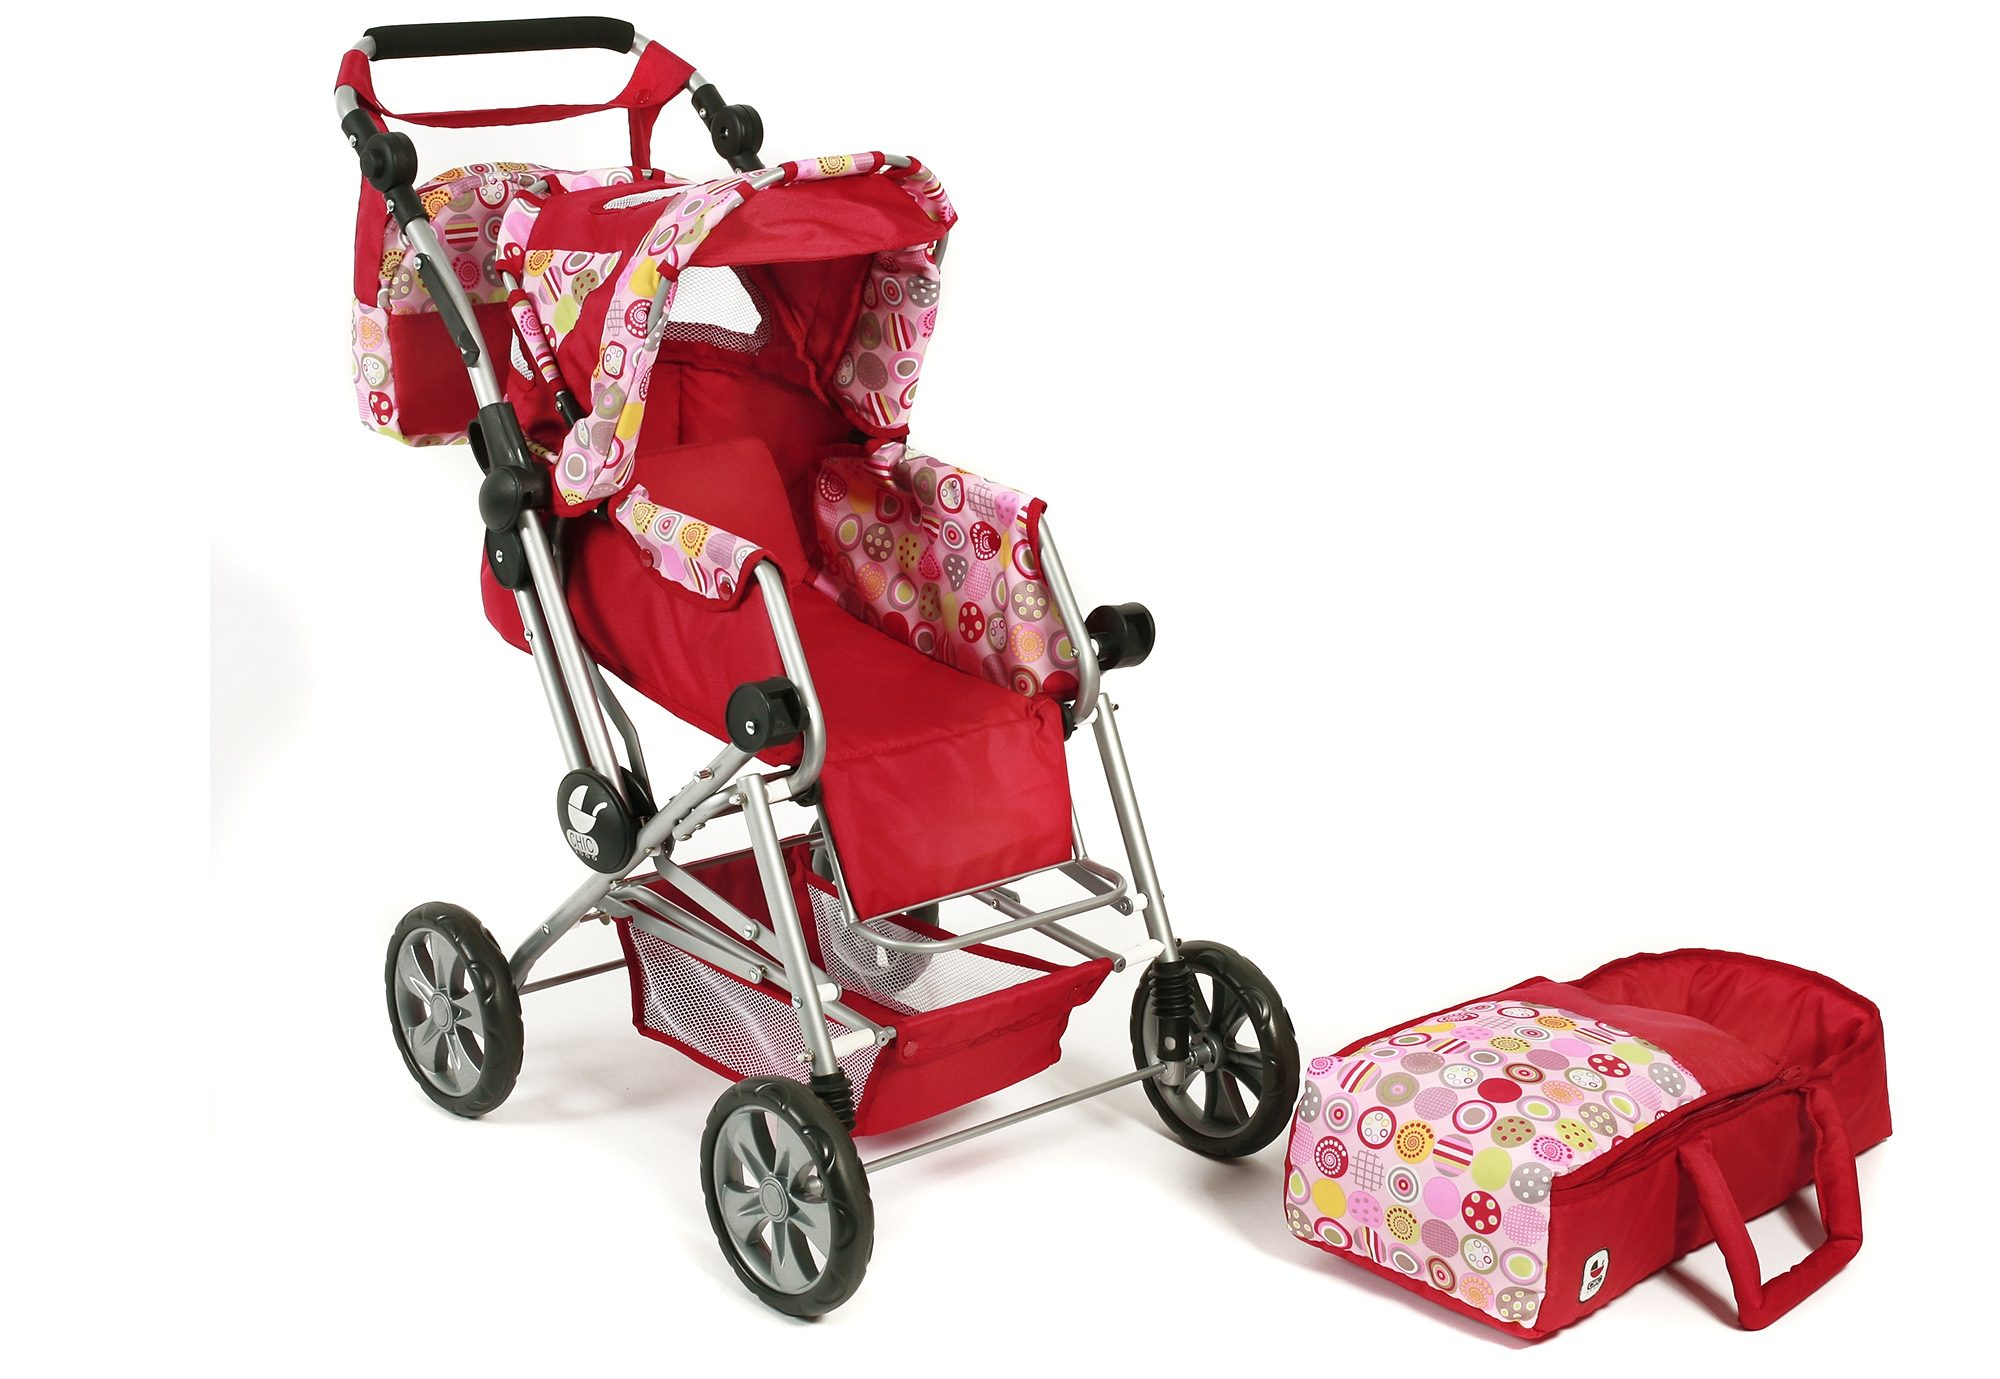 CHIC2000 Puppenwagen mit Wickeltasche, »Road Star, Ruby Red«